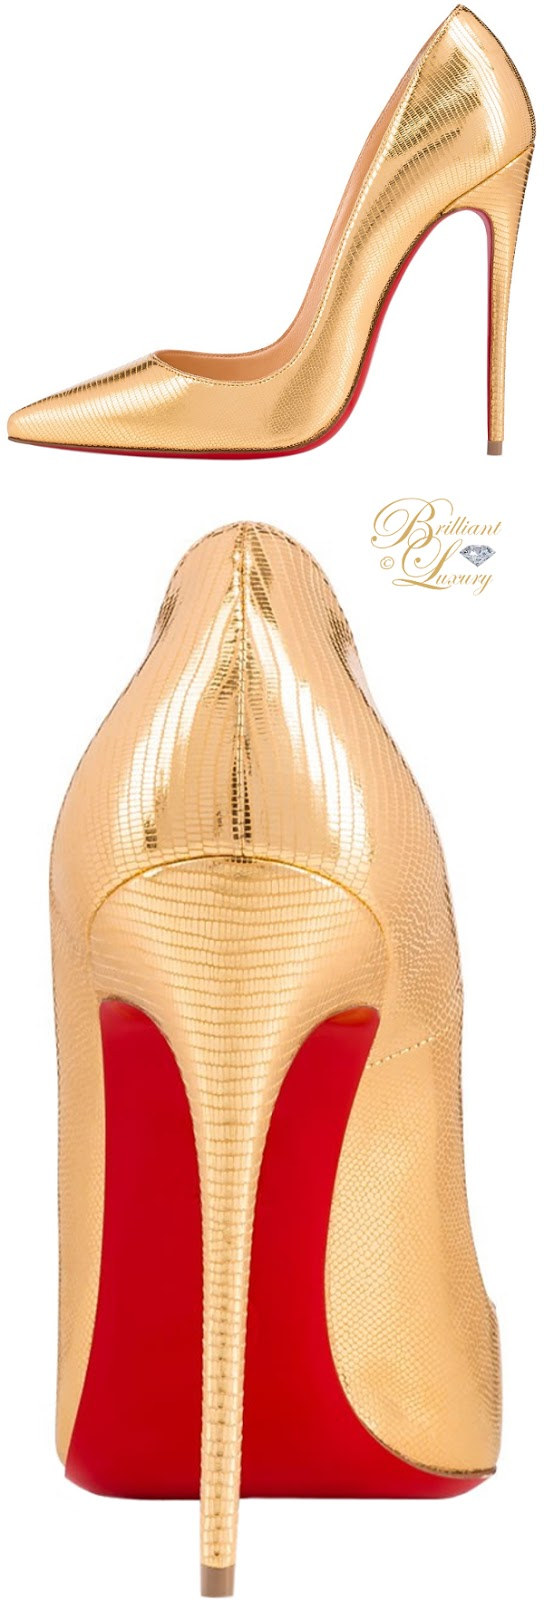 Brilliant Luxury ♦ Christian Louboutin So Kate Laminato Dino pumps